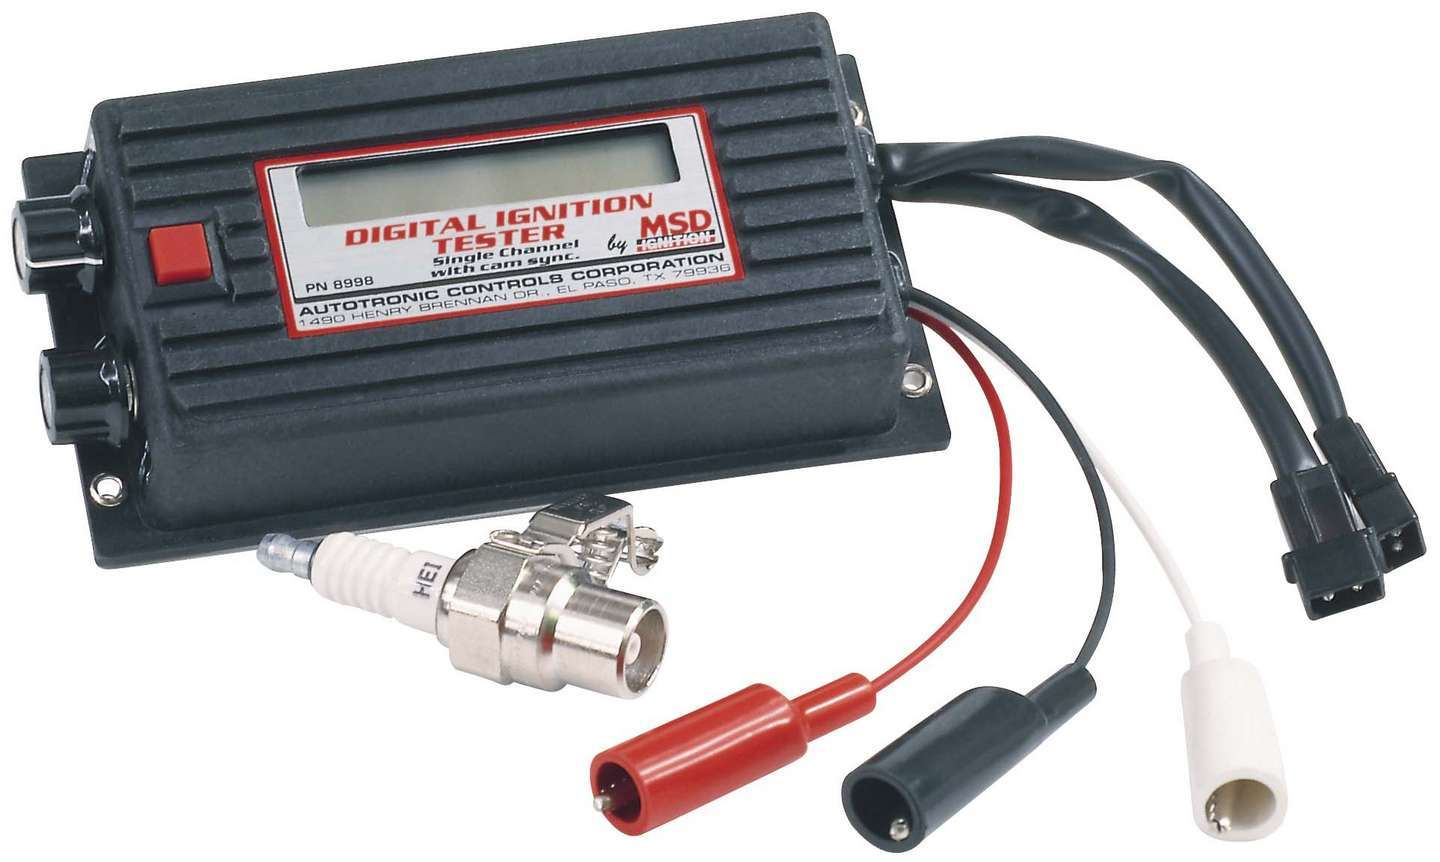 MSD Ignition 8998 Ignition Tester, Single Channel Digital Ignition Tester, Test all MSD CD/DIS Single Channel Ignitions, Each